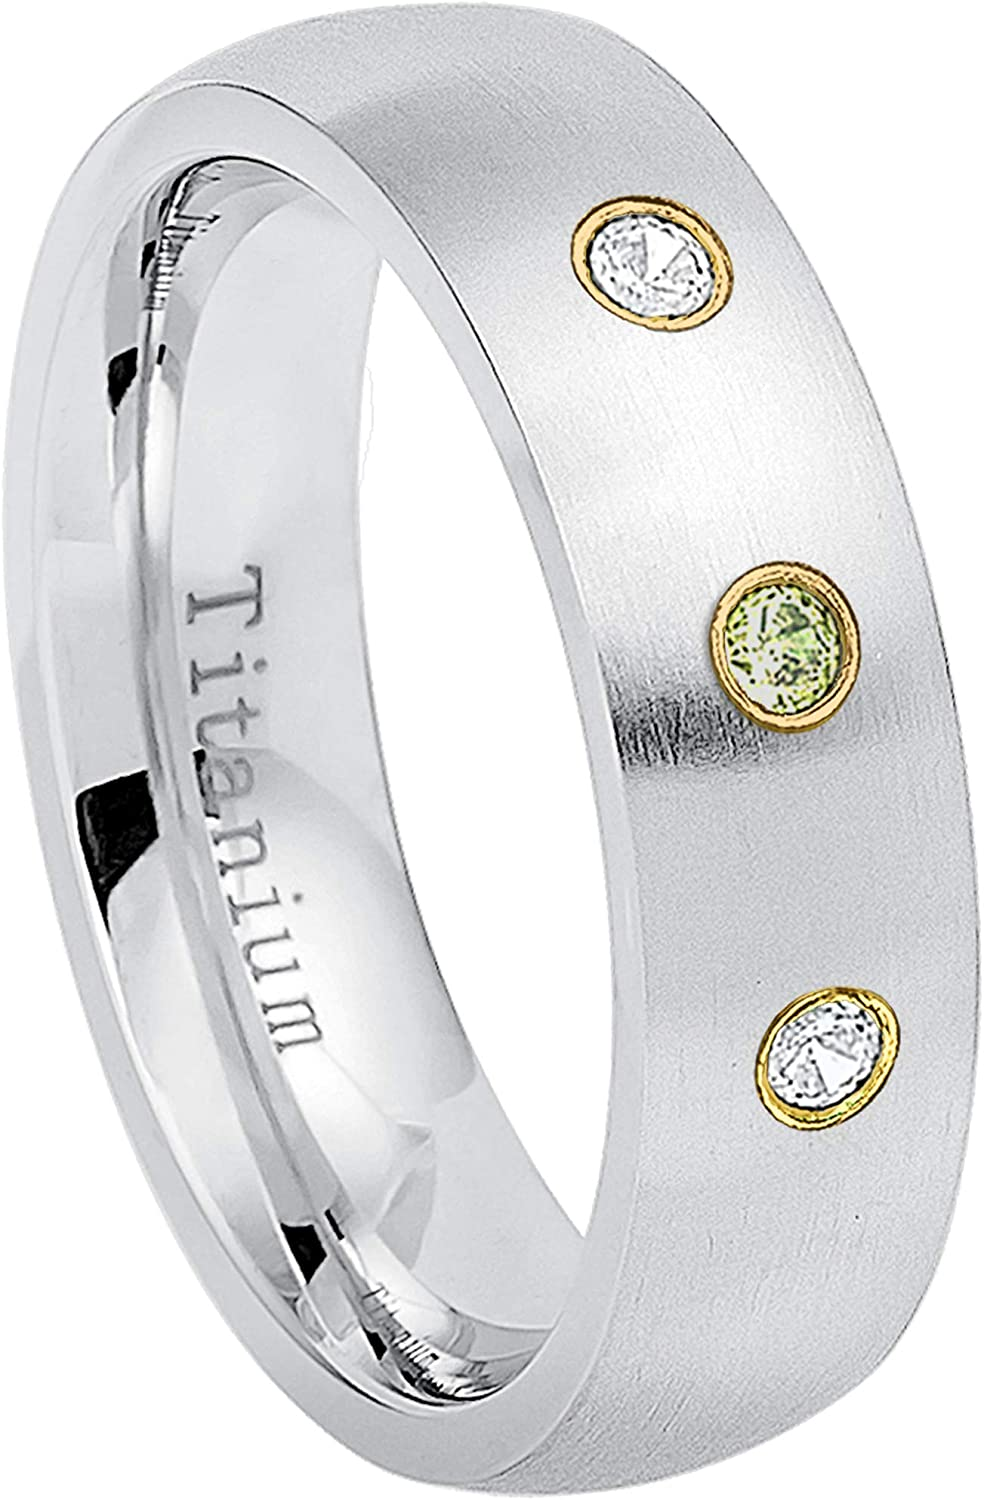 5 0.21ctw Peridot /& Diamond 3-Stone Titanium Ring6MM Brushed Finish Comfort Fit Classic Dome White Wedding Band